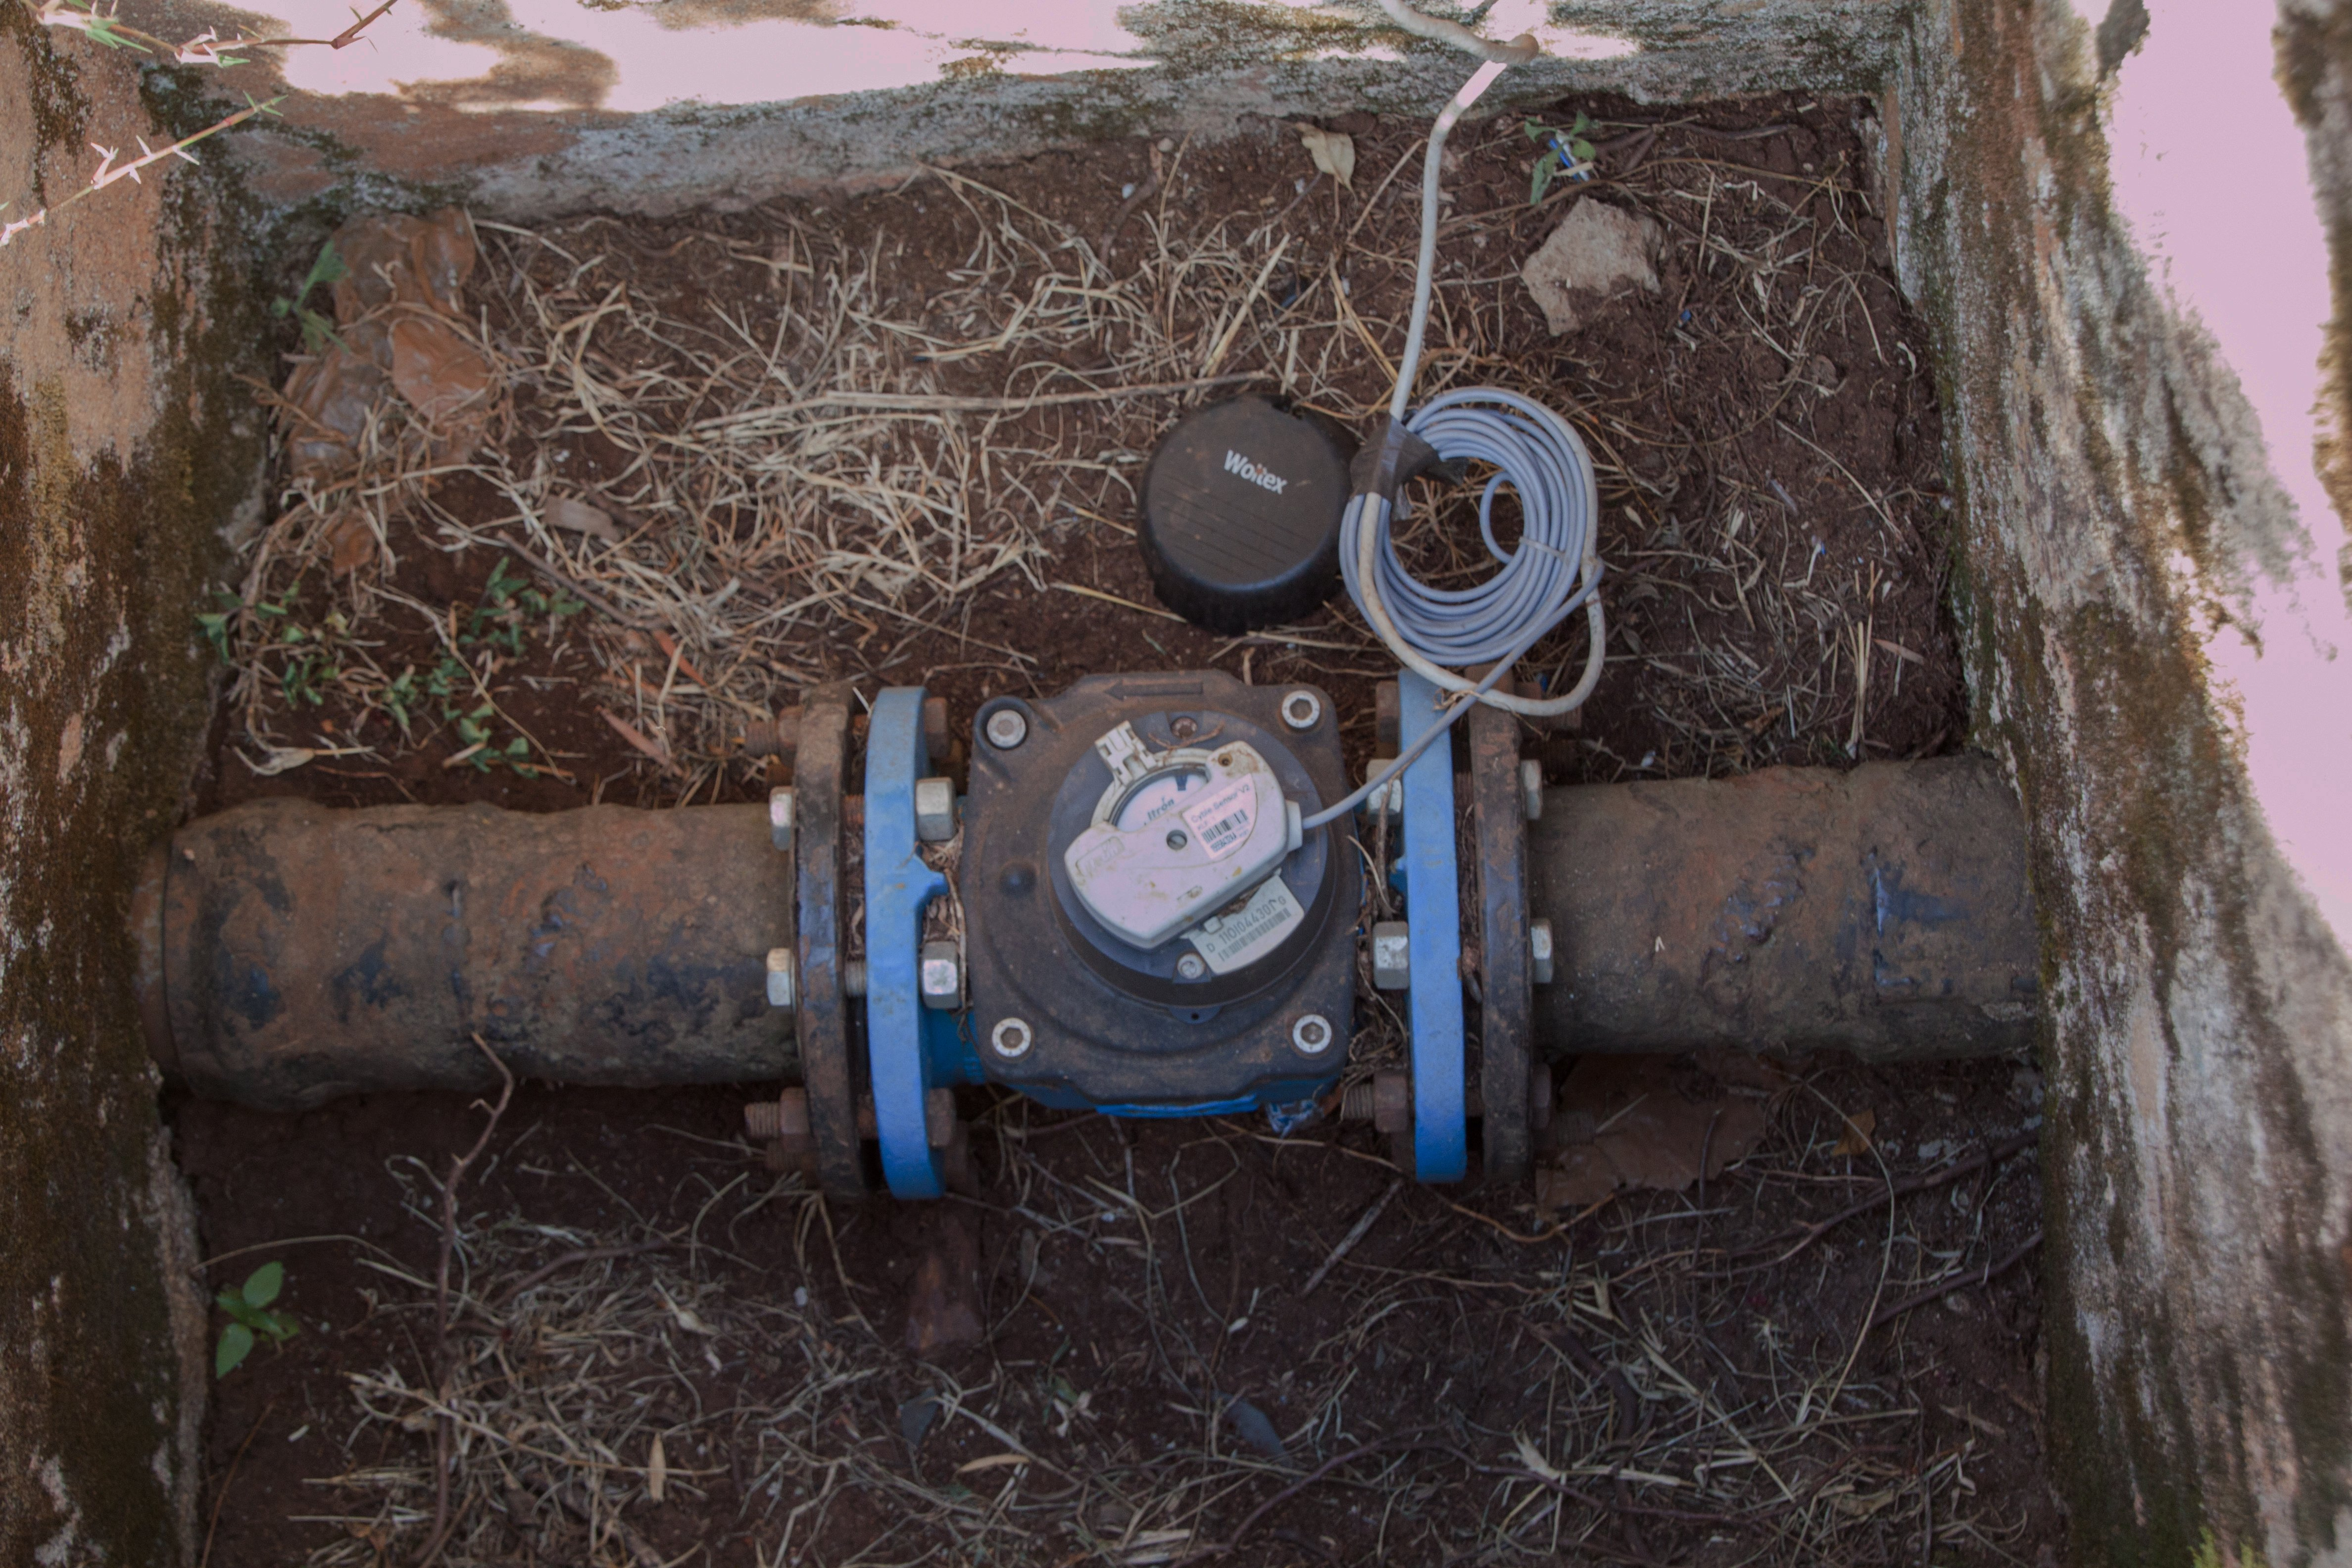 Retrofitting a water meter with sensors for flow monitoring